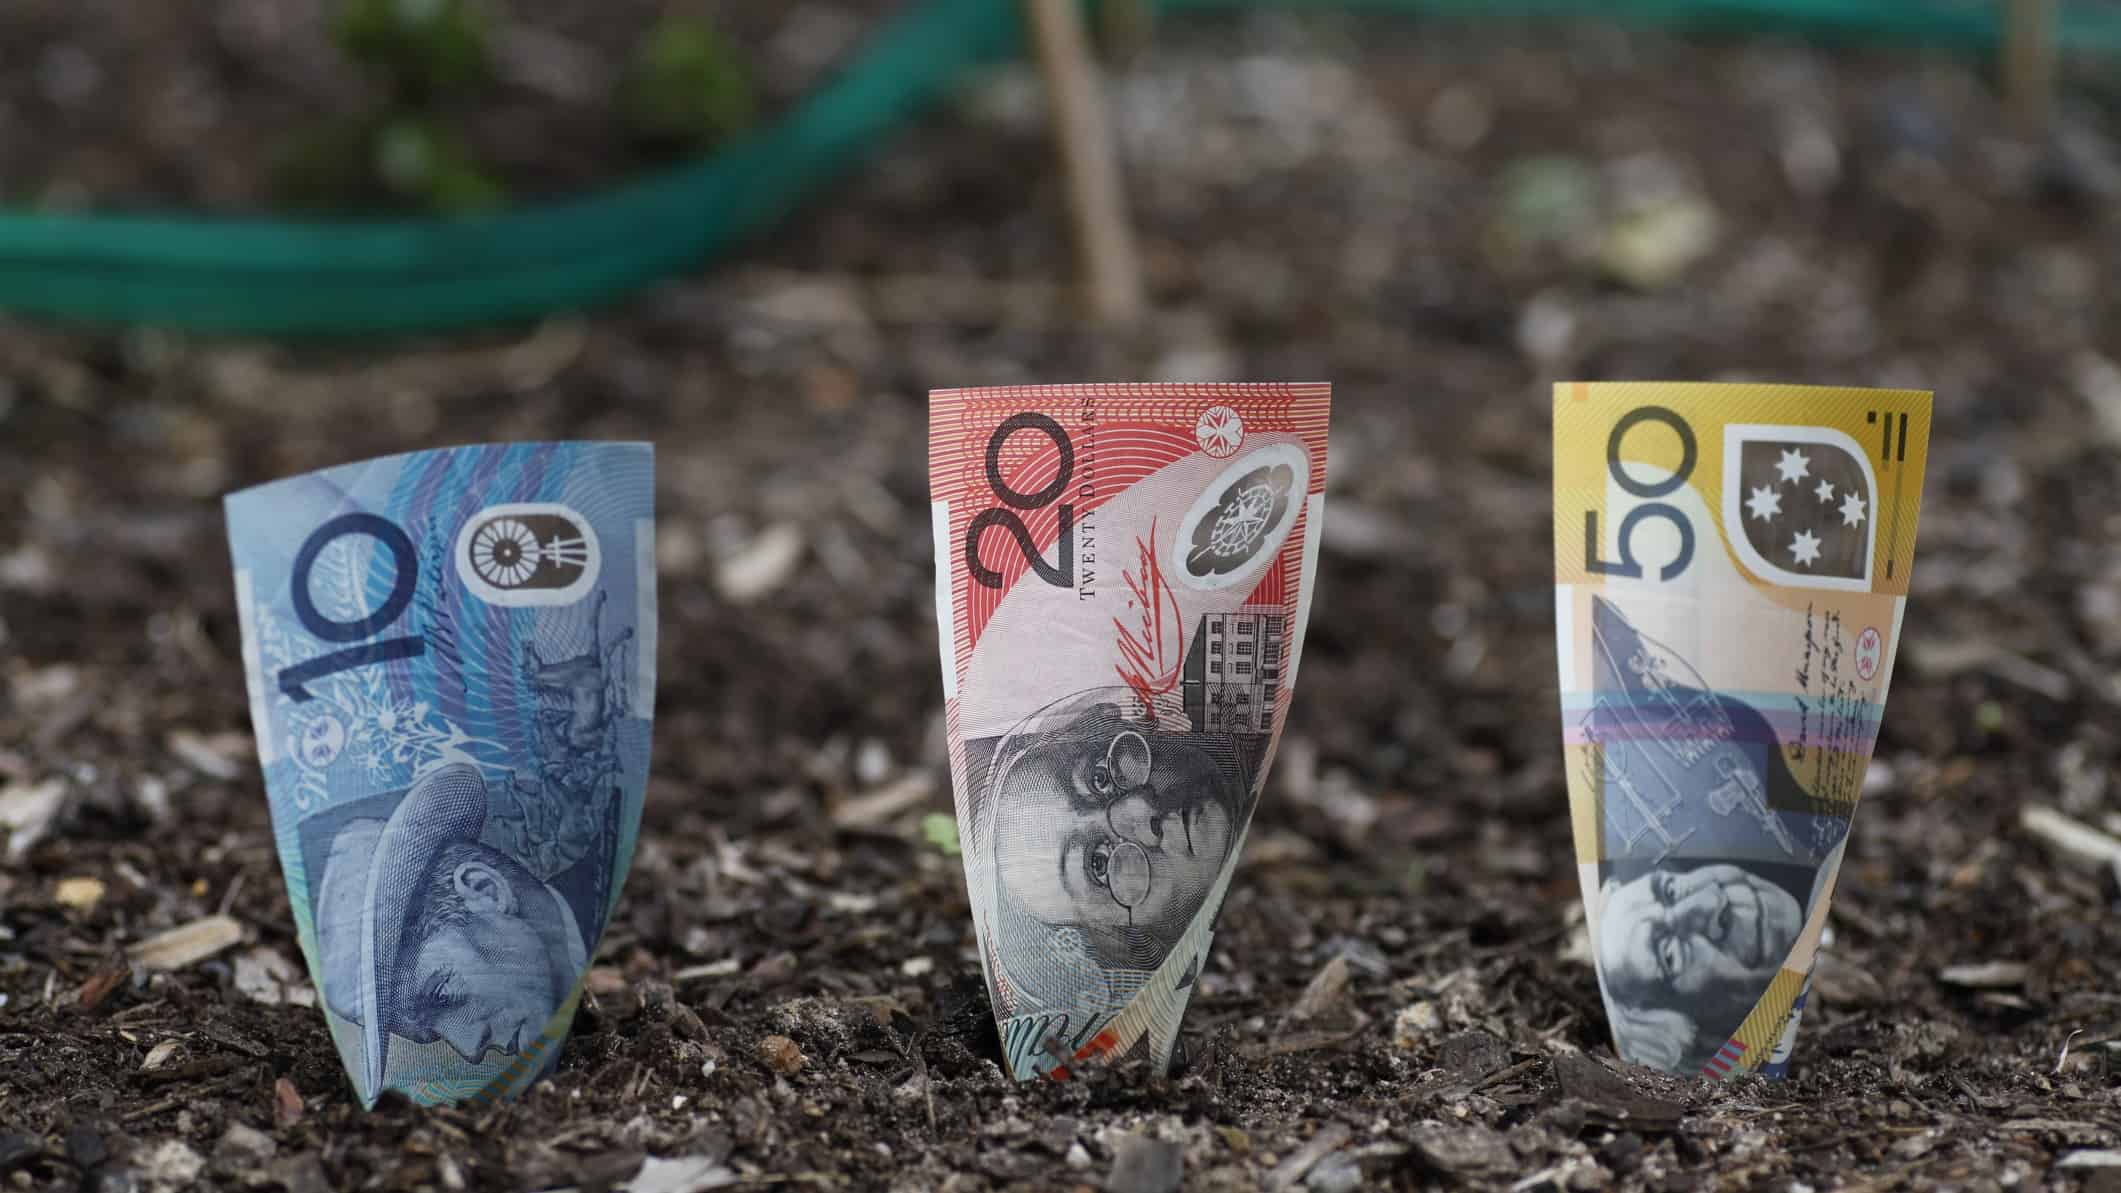 $10, $20 and $50 noted planted in the dirt signifying asx growth shares